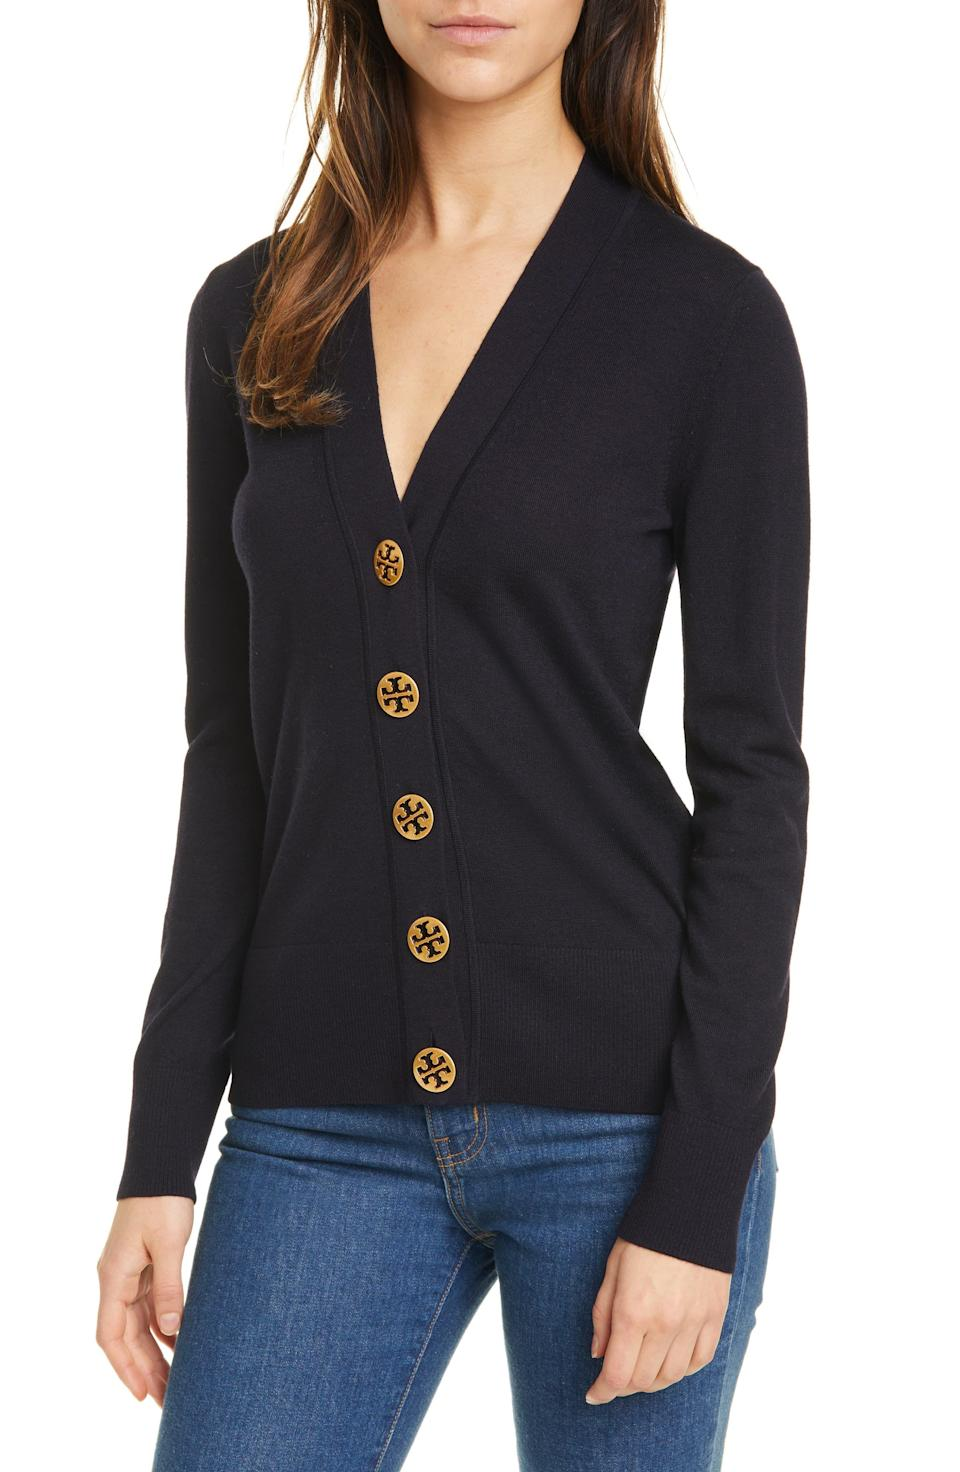 """<p><strong>Tory Burch</strong></p><p>nordstrom.com</p><p><strong>$248.00</strong></p><p><a href=""""https://go.redirectingat.com?id=74968X1596630&url=https%3A%2F%2Fwww.nordstrom.com%2Fs%2Ftory-burch-simone-cardigan%2F5544994&sref=https%3A%2F%2Fwww.townandcountrymag.com%2Fstyle%2Ffashion-trends%2Fg22673885%2Fcute-fall-sweaters%2F"""" rel=""""nofollow noopener"""" target=""""_blank"""" data-ylk=""""slk:Shop Now"""" class=""""link rapid-noclick-resp"""">Shop Now</a></p><p>You can never go wrong with a classic wool cardigan. Tory Burch's version comes in five colors—and we're tempted to stock up on more than one.</p>"""